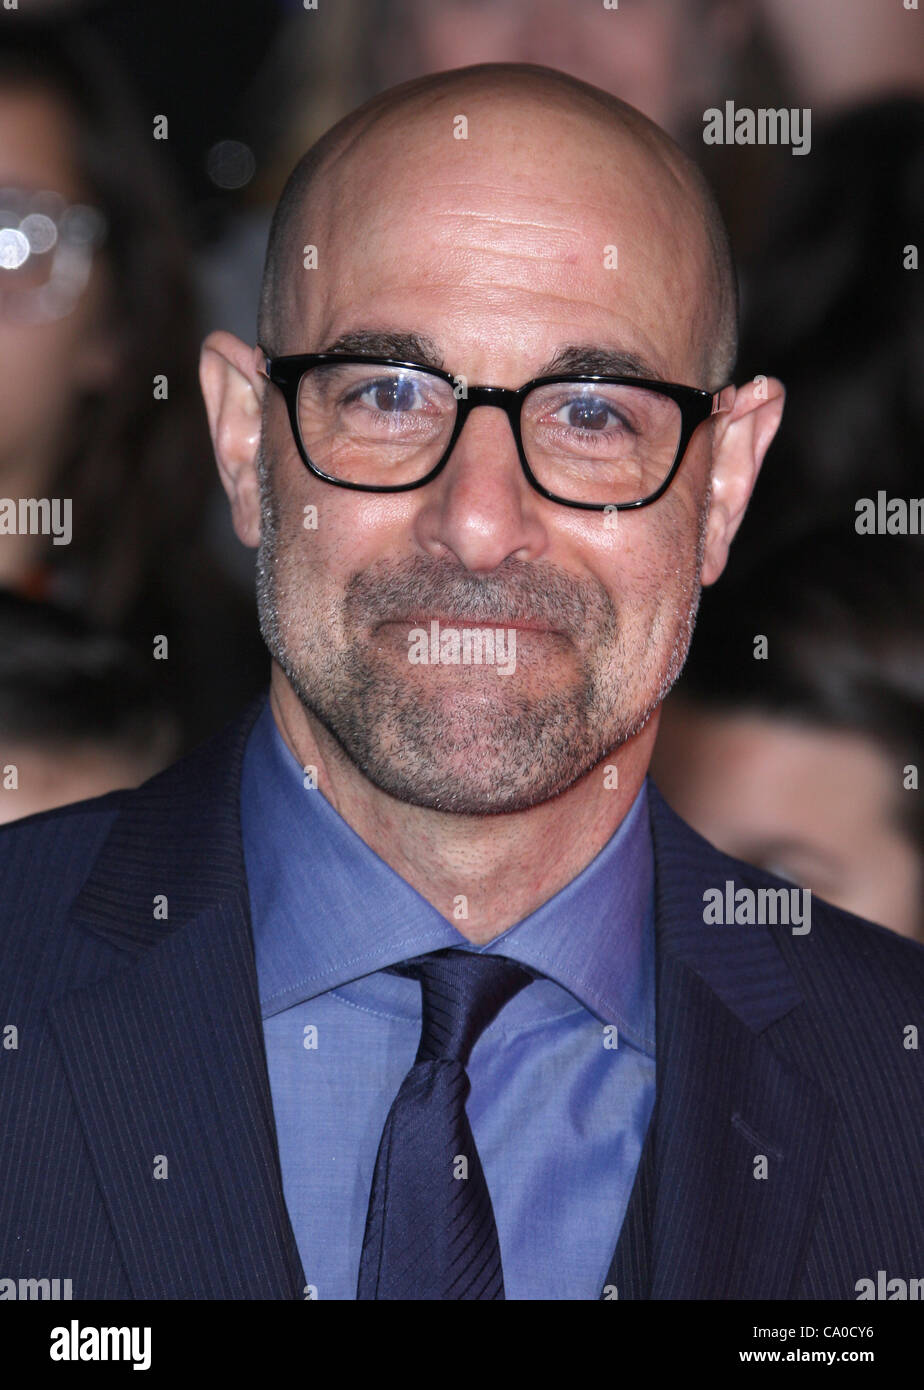 Stanley Tucci The Hunger Games